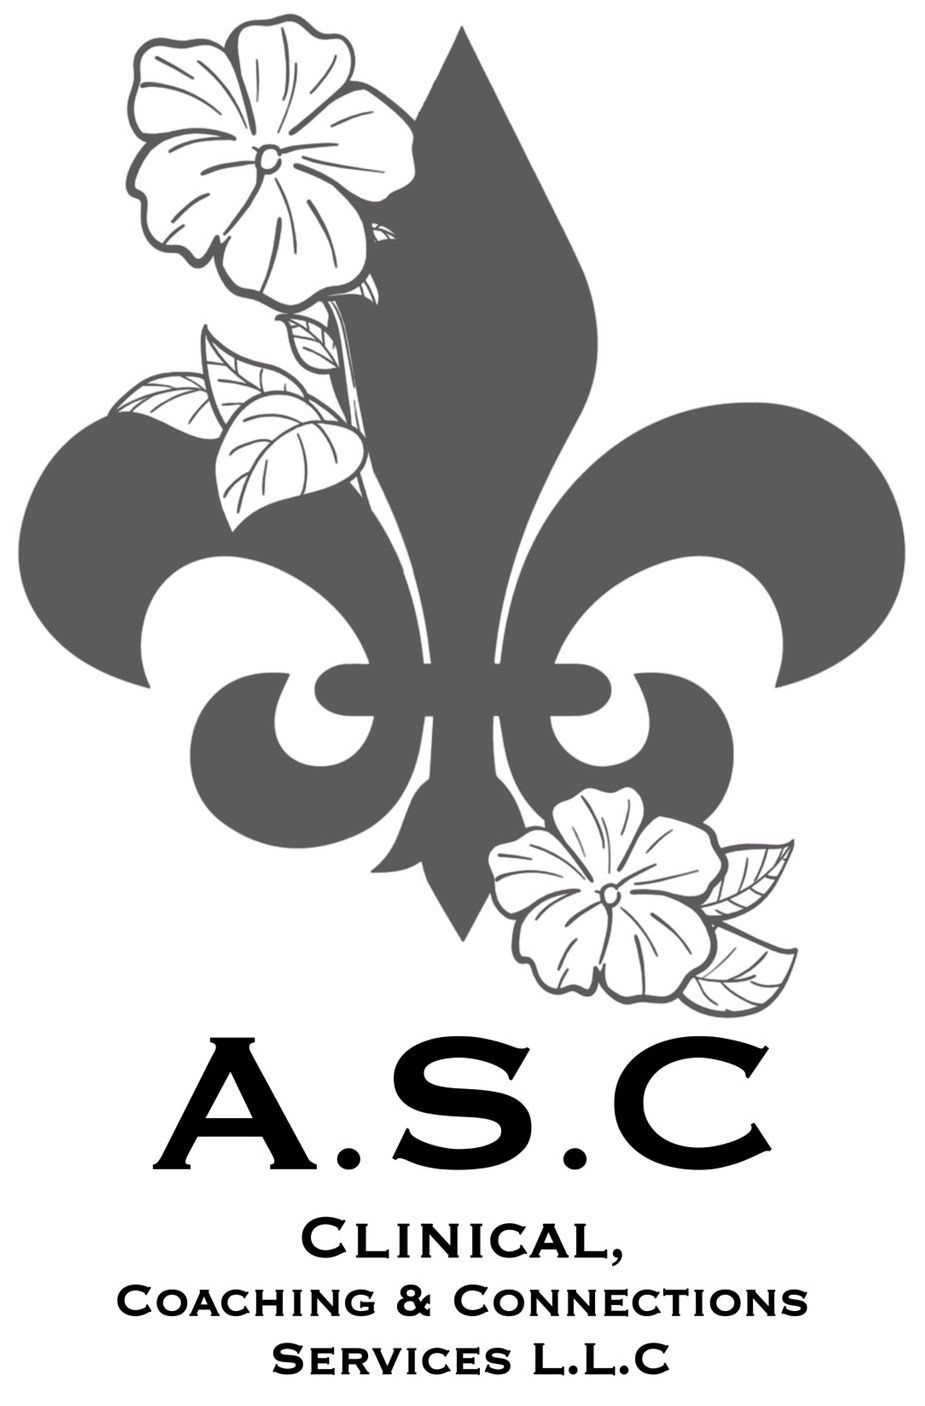 ASC Clinical, Coaching & Connections Services LLC